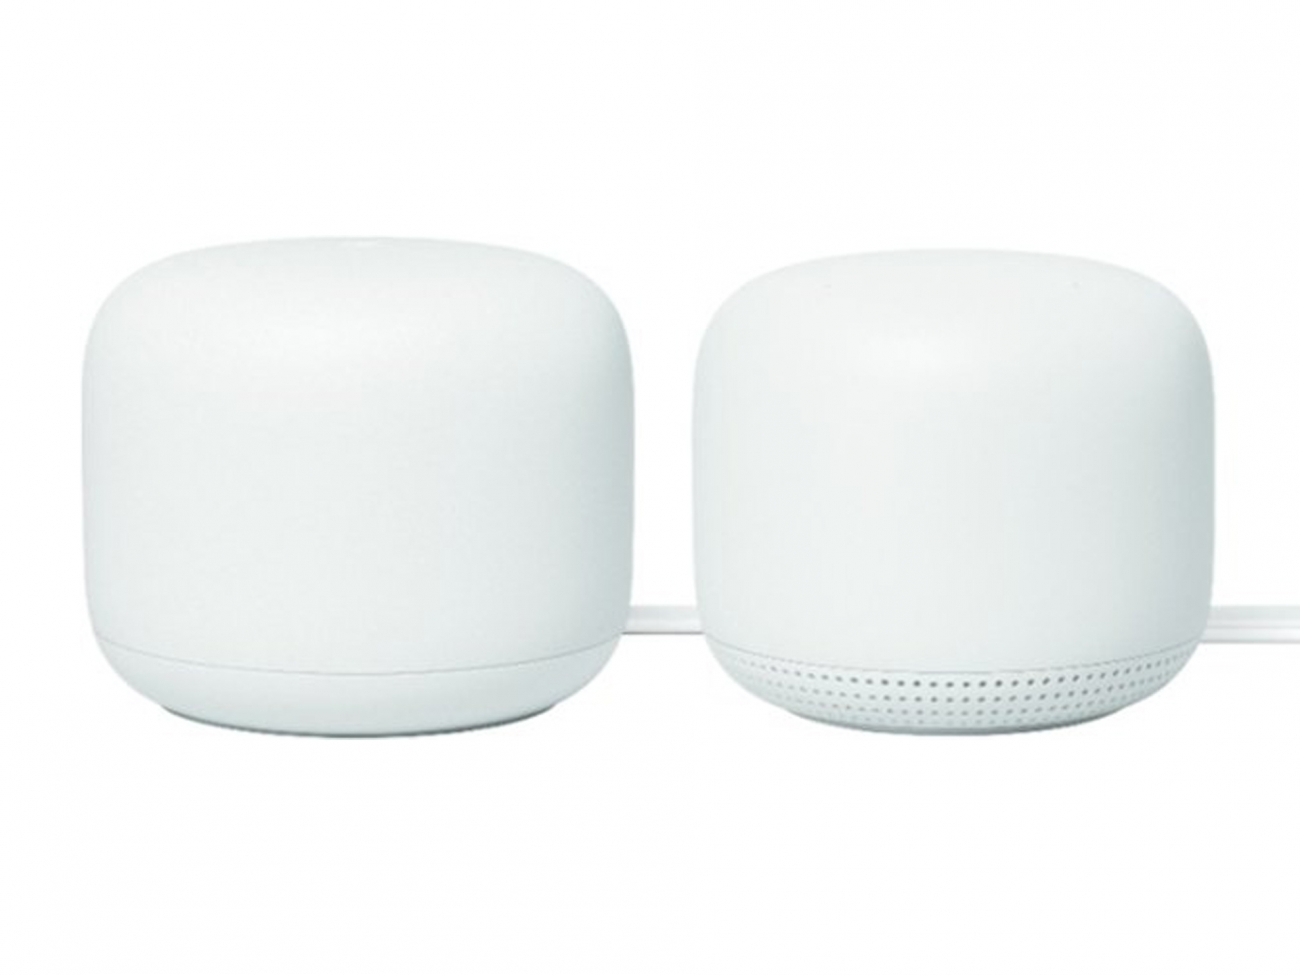 Google Nest Wi-Fi Router and Nest Wifi Add-On Point. Домашняя WiFi-система: Router+Point